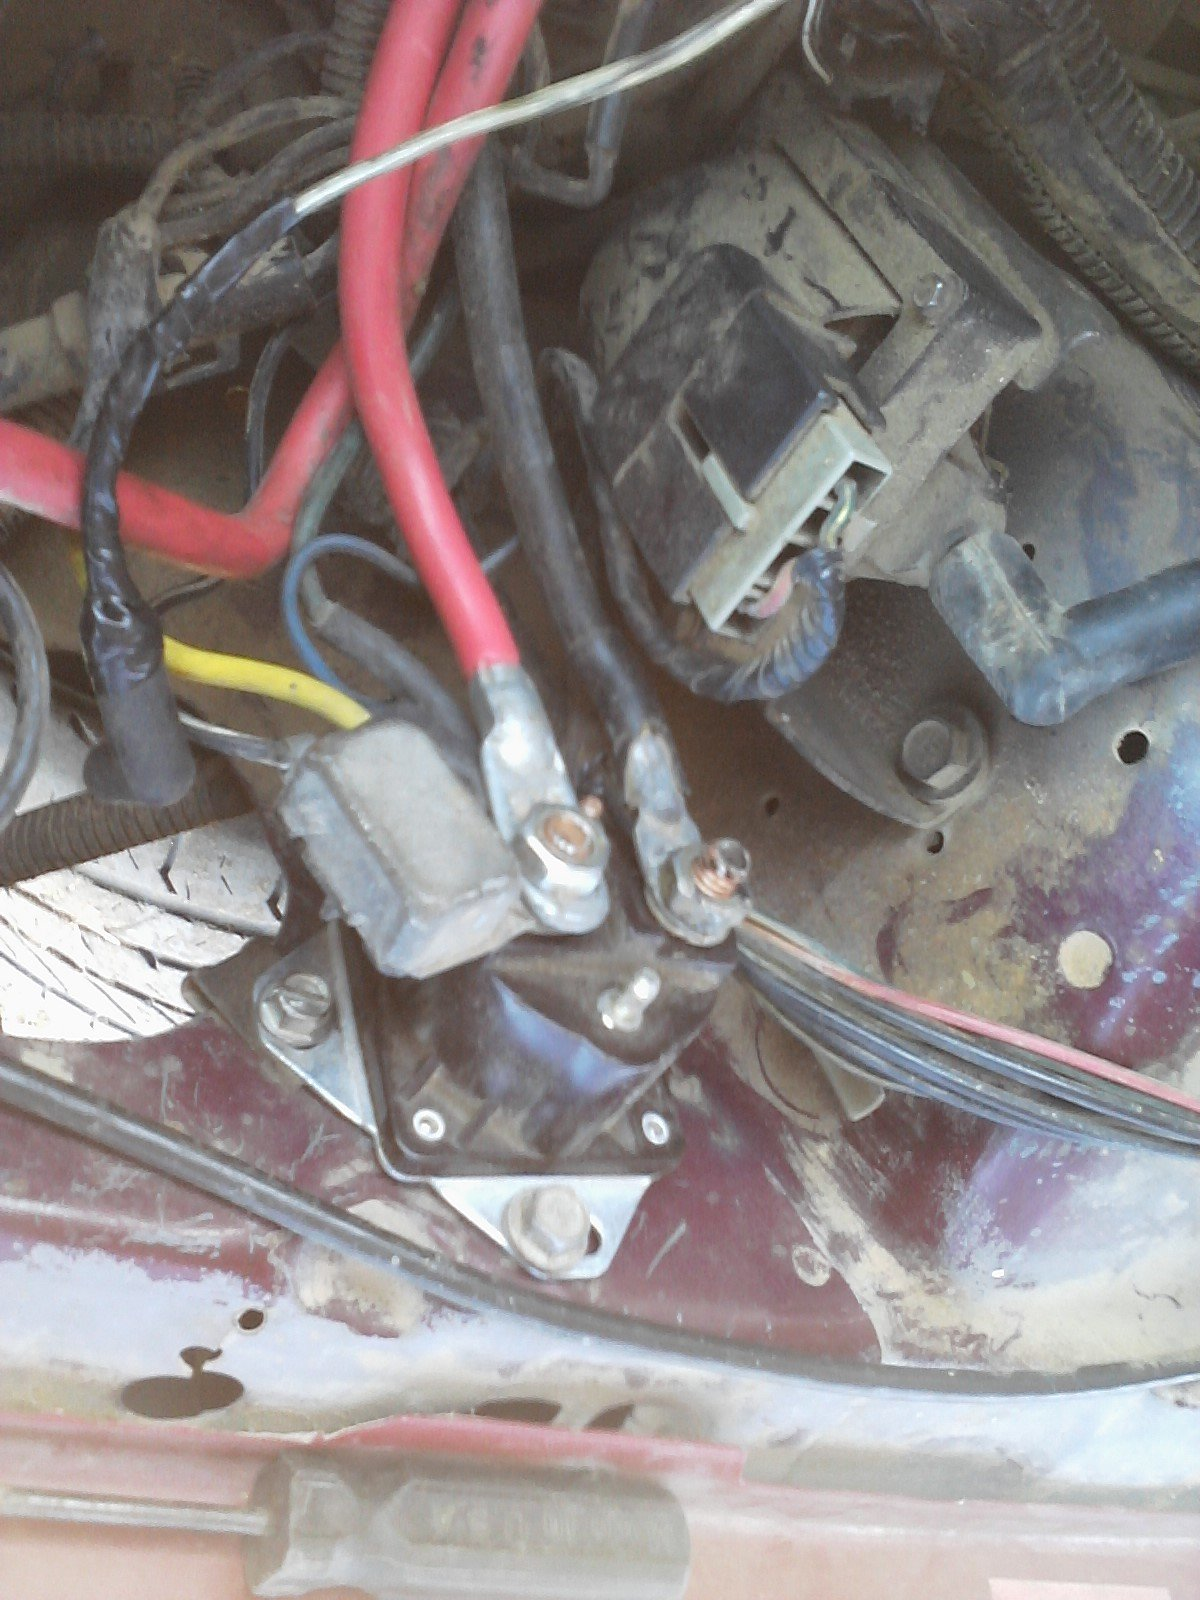 1990 Mustang GT Starter solenoid issues. Please help me with my only working car!-0103011456.jpg